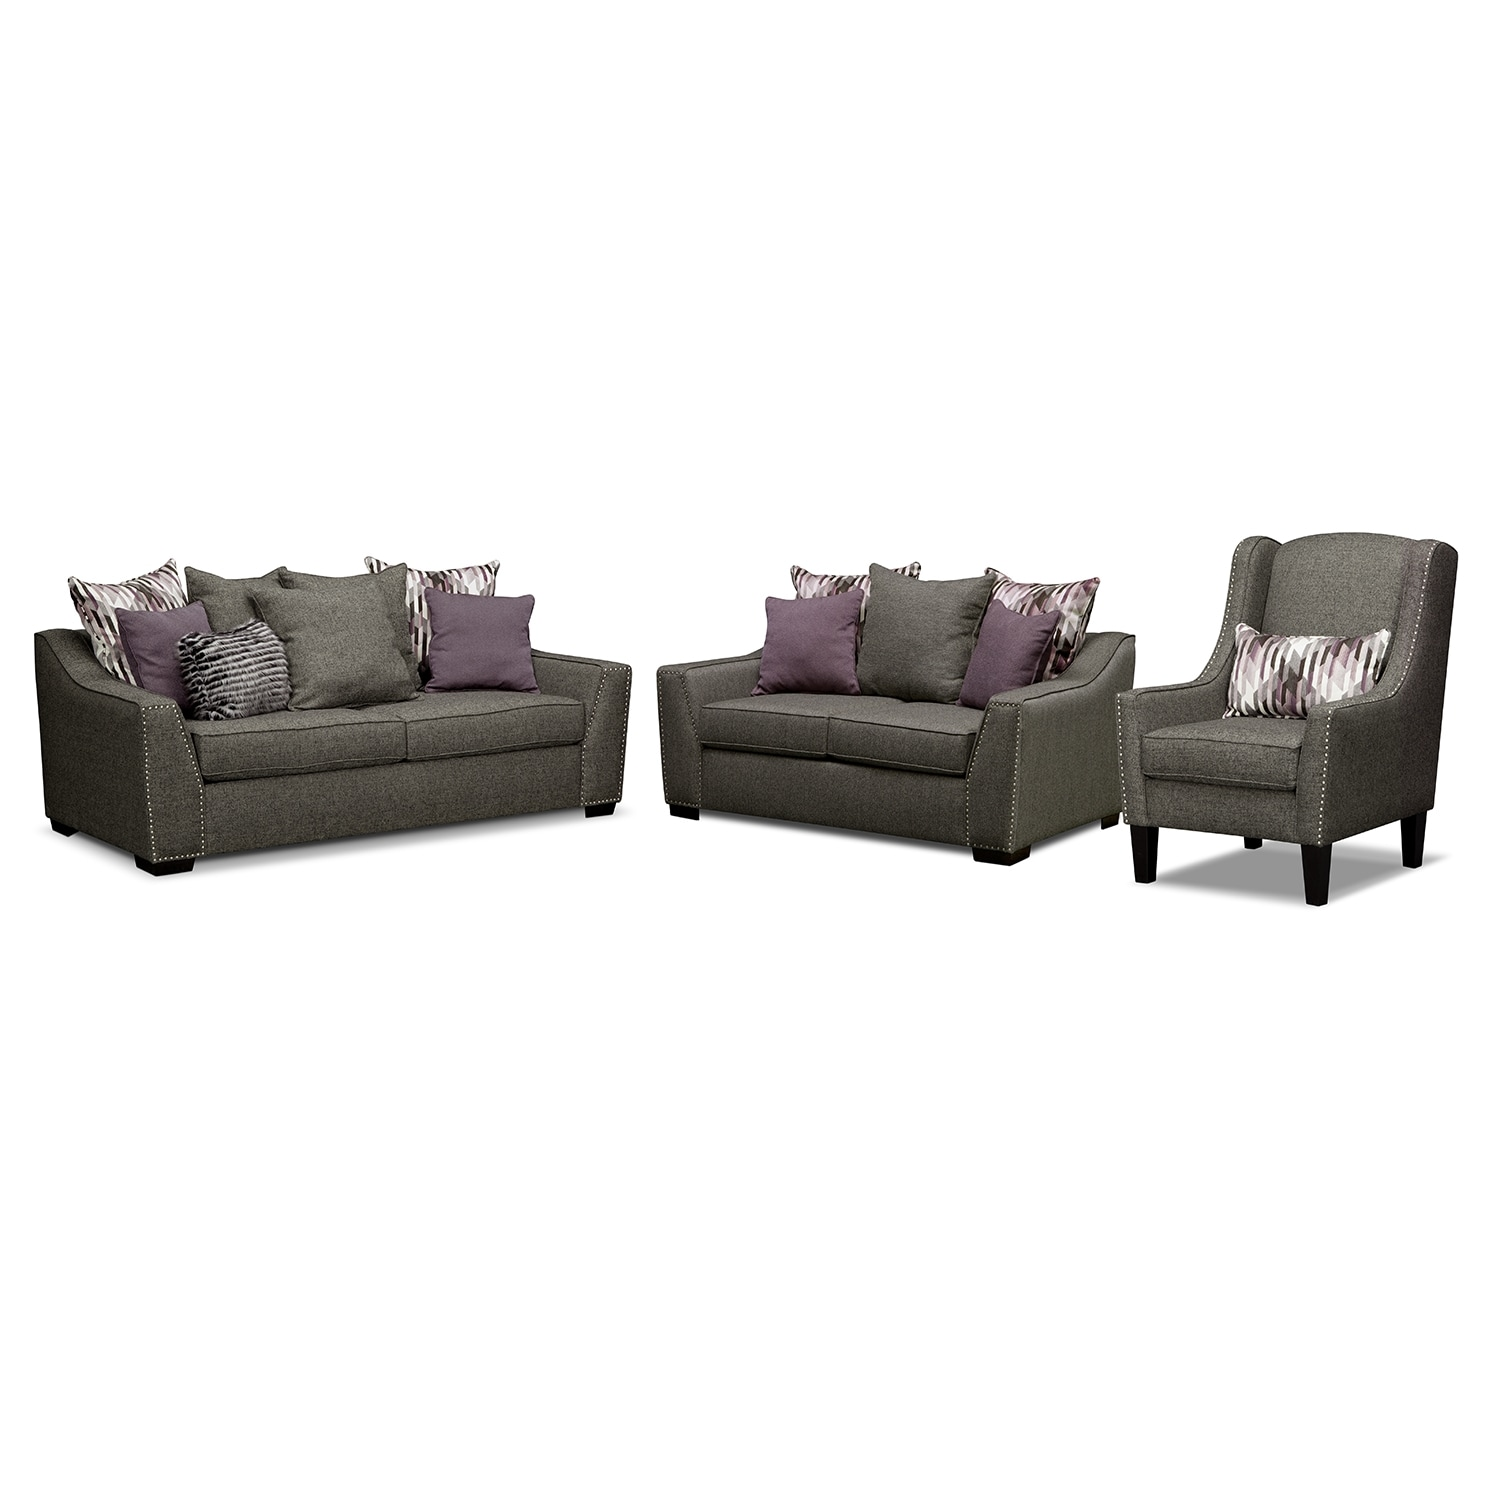 [Ritz 3 Pc. Living Room w/Accent Chair]